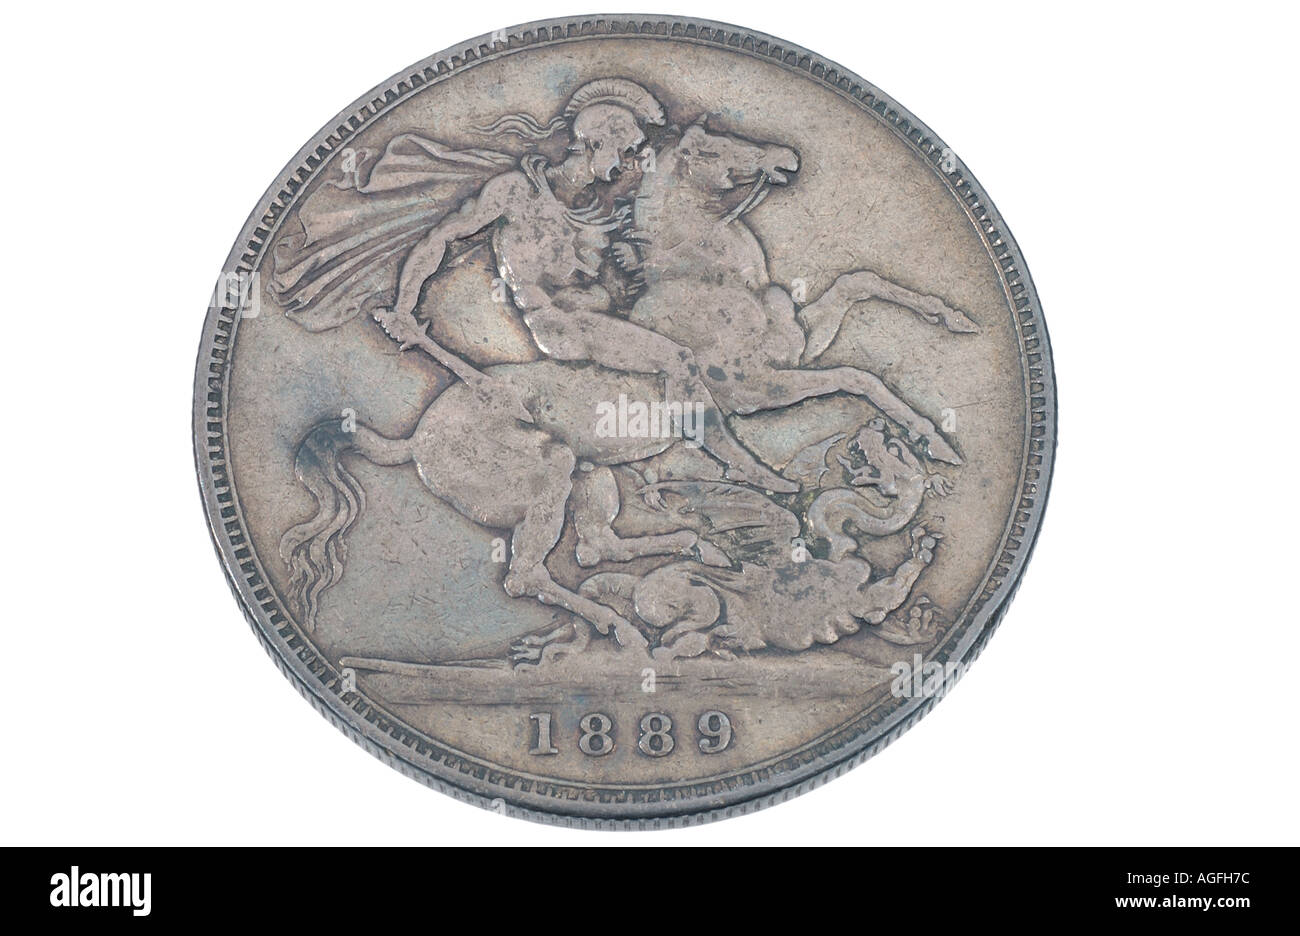 United Kingdom Victorian crown coin - Stock Image